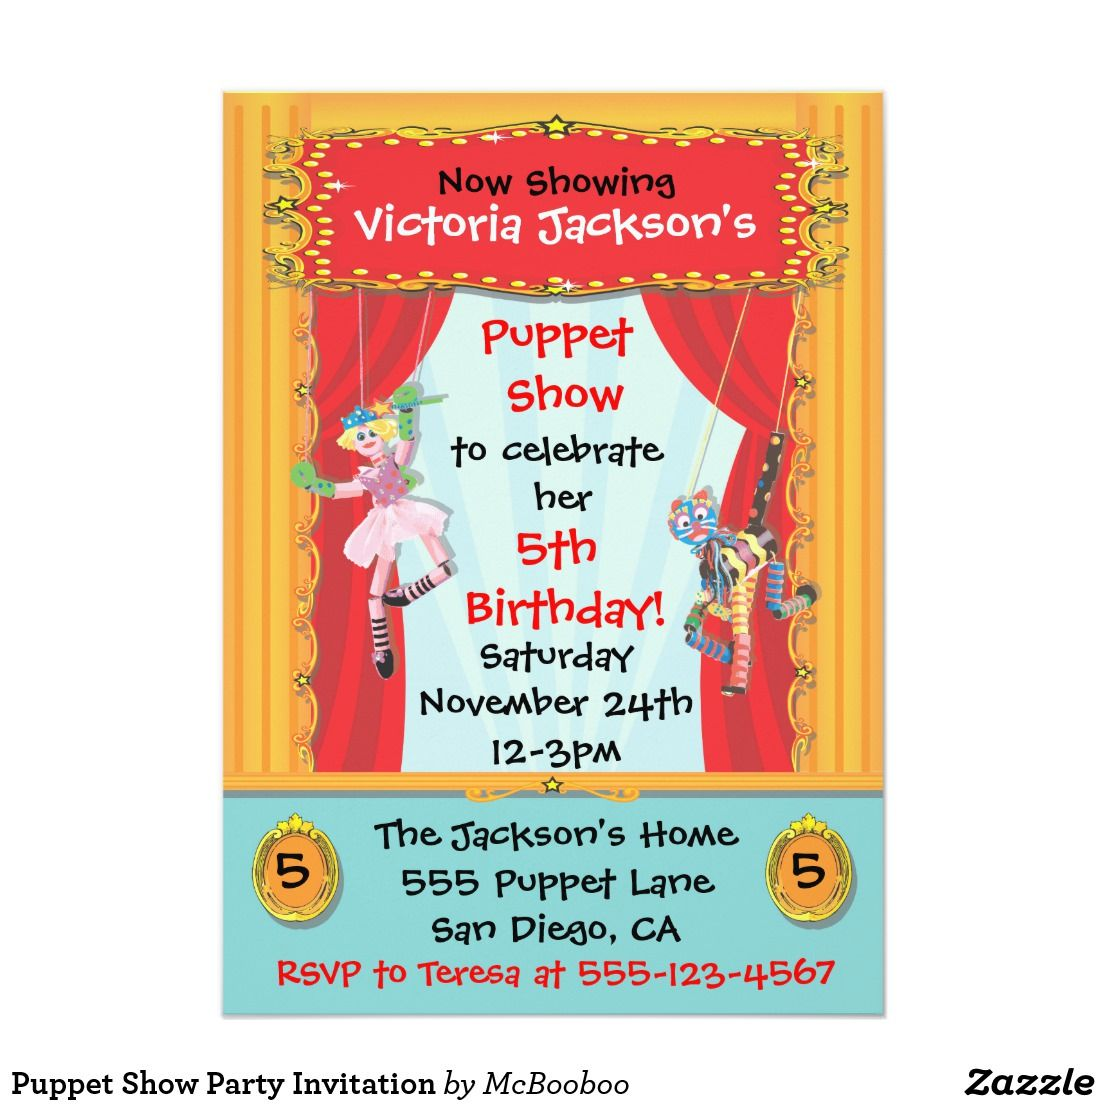 Outstanding 5th birthday invitations pattern resume ideas puppet show party invitation birthday party ideas pinterest filmwisefo